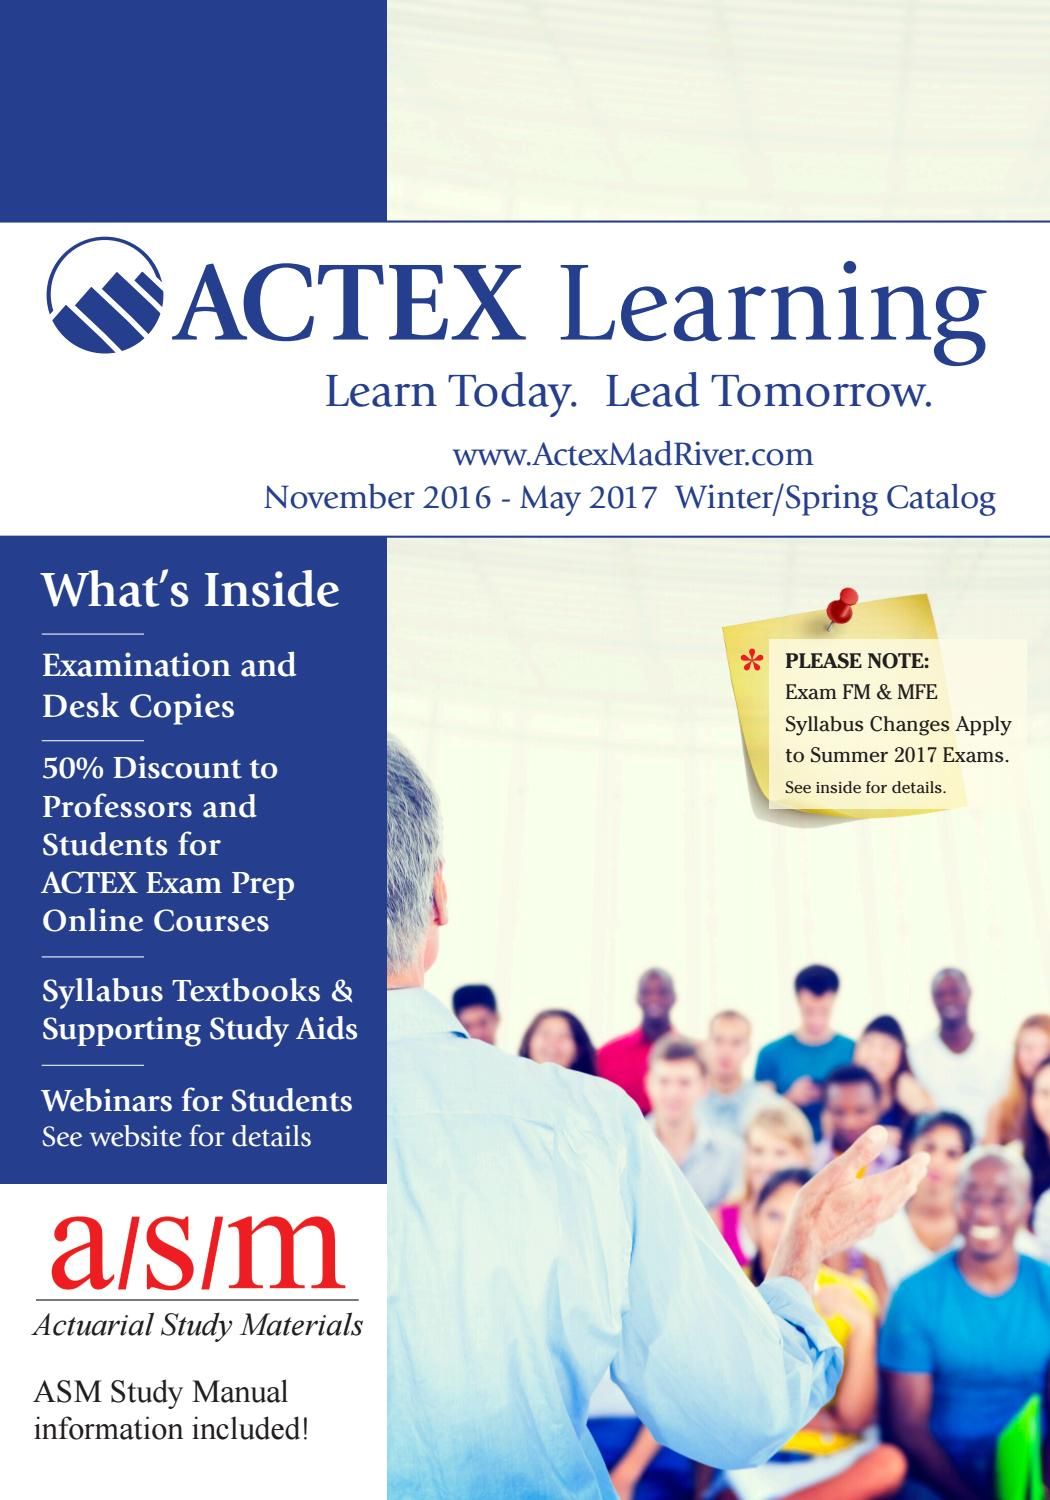 ACTEX Learning Catalog for Professor/Student Customers by ACTEX Learning -  issuu